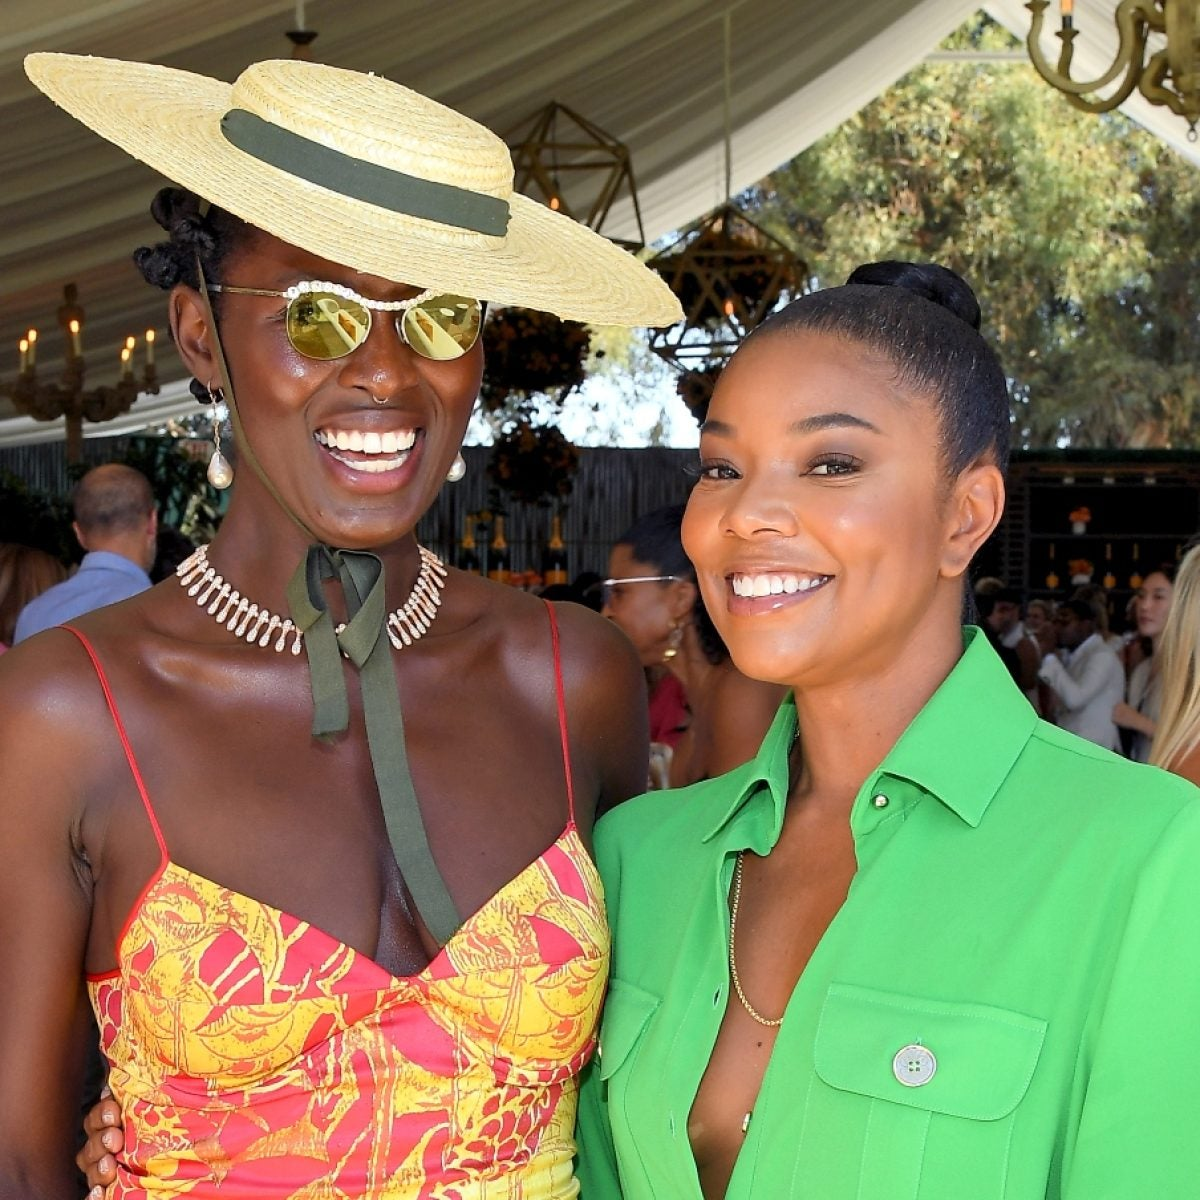 Every Single Black Person At The Veuve Clicquot Polo Classic Understood The Assignment